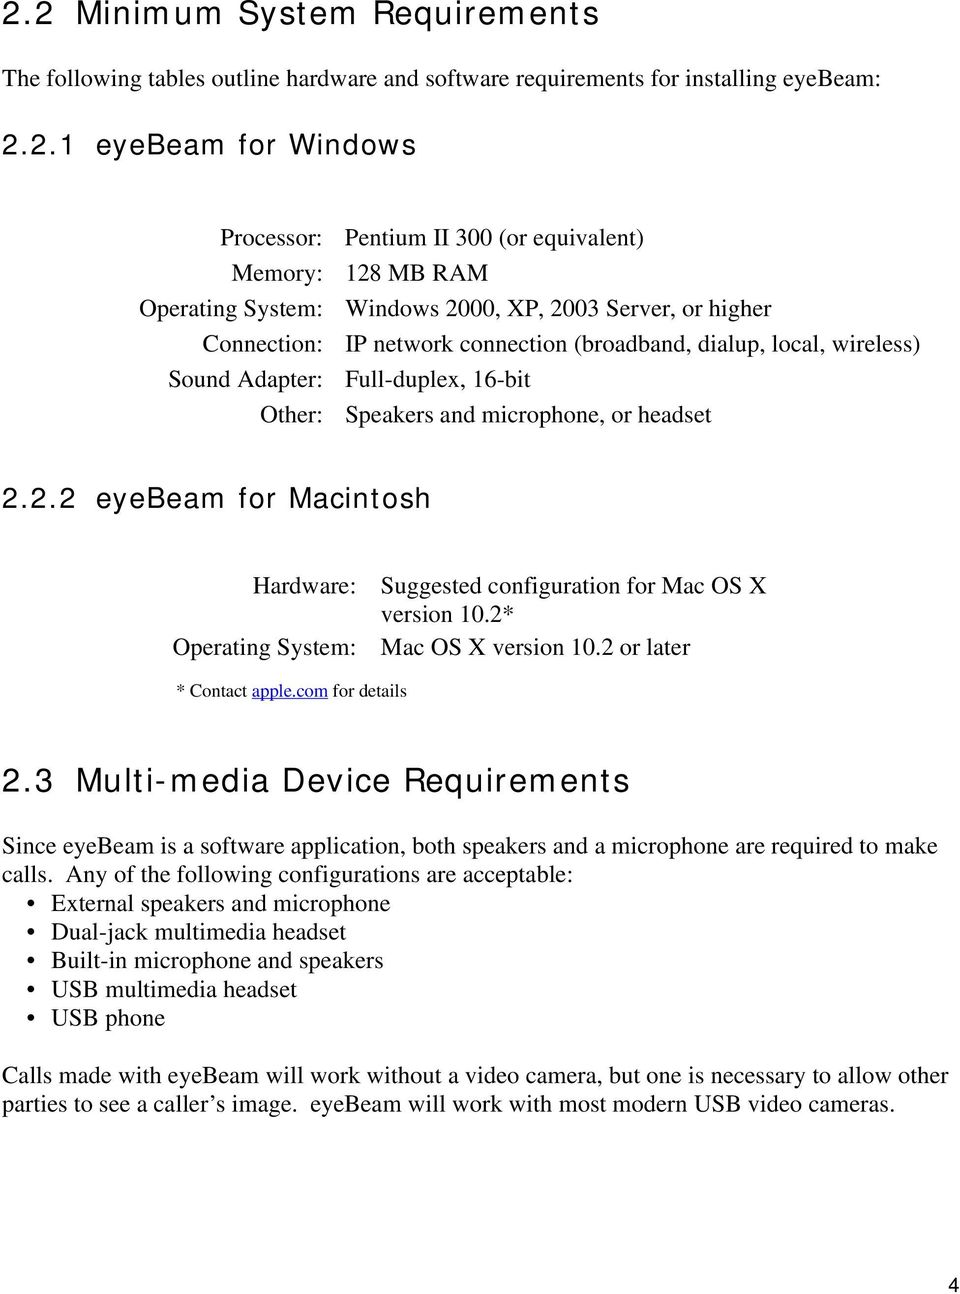 microphone, or headset 2.2.2 eyebeam for Macintosh Hardware: Operating System: Suggested configuration for Mac OS X version 10.2* Mac OS X version 10.2 or later * Contact apple.com for details 2.